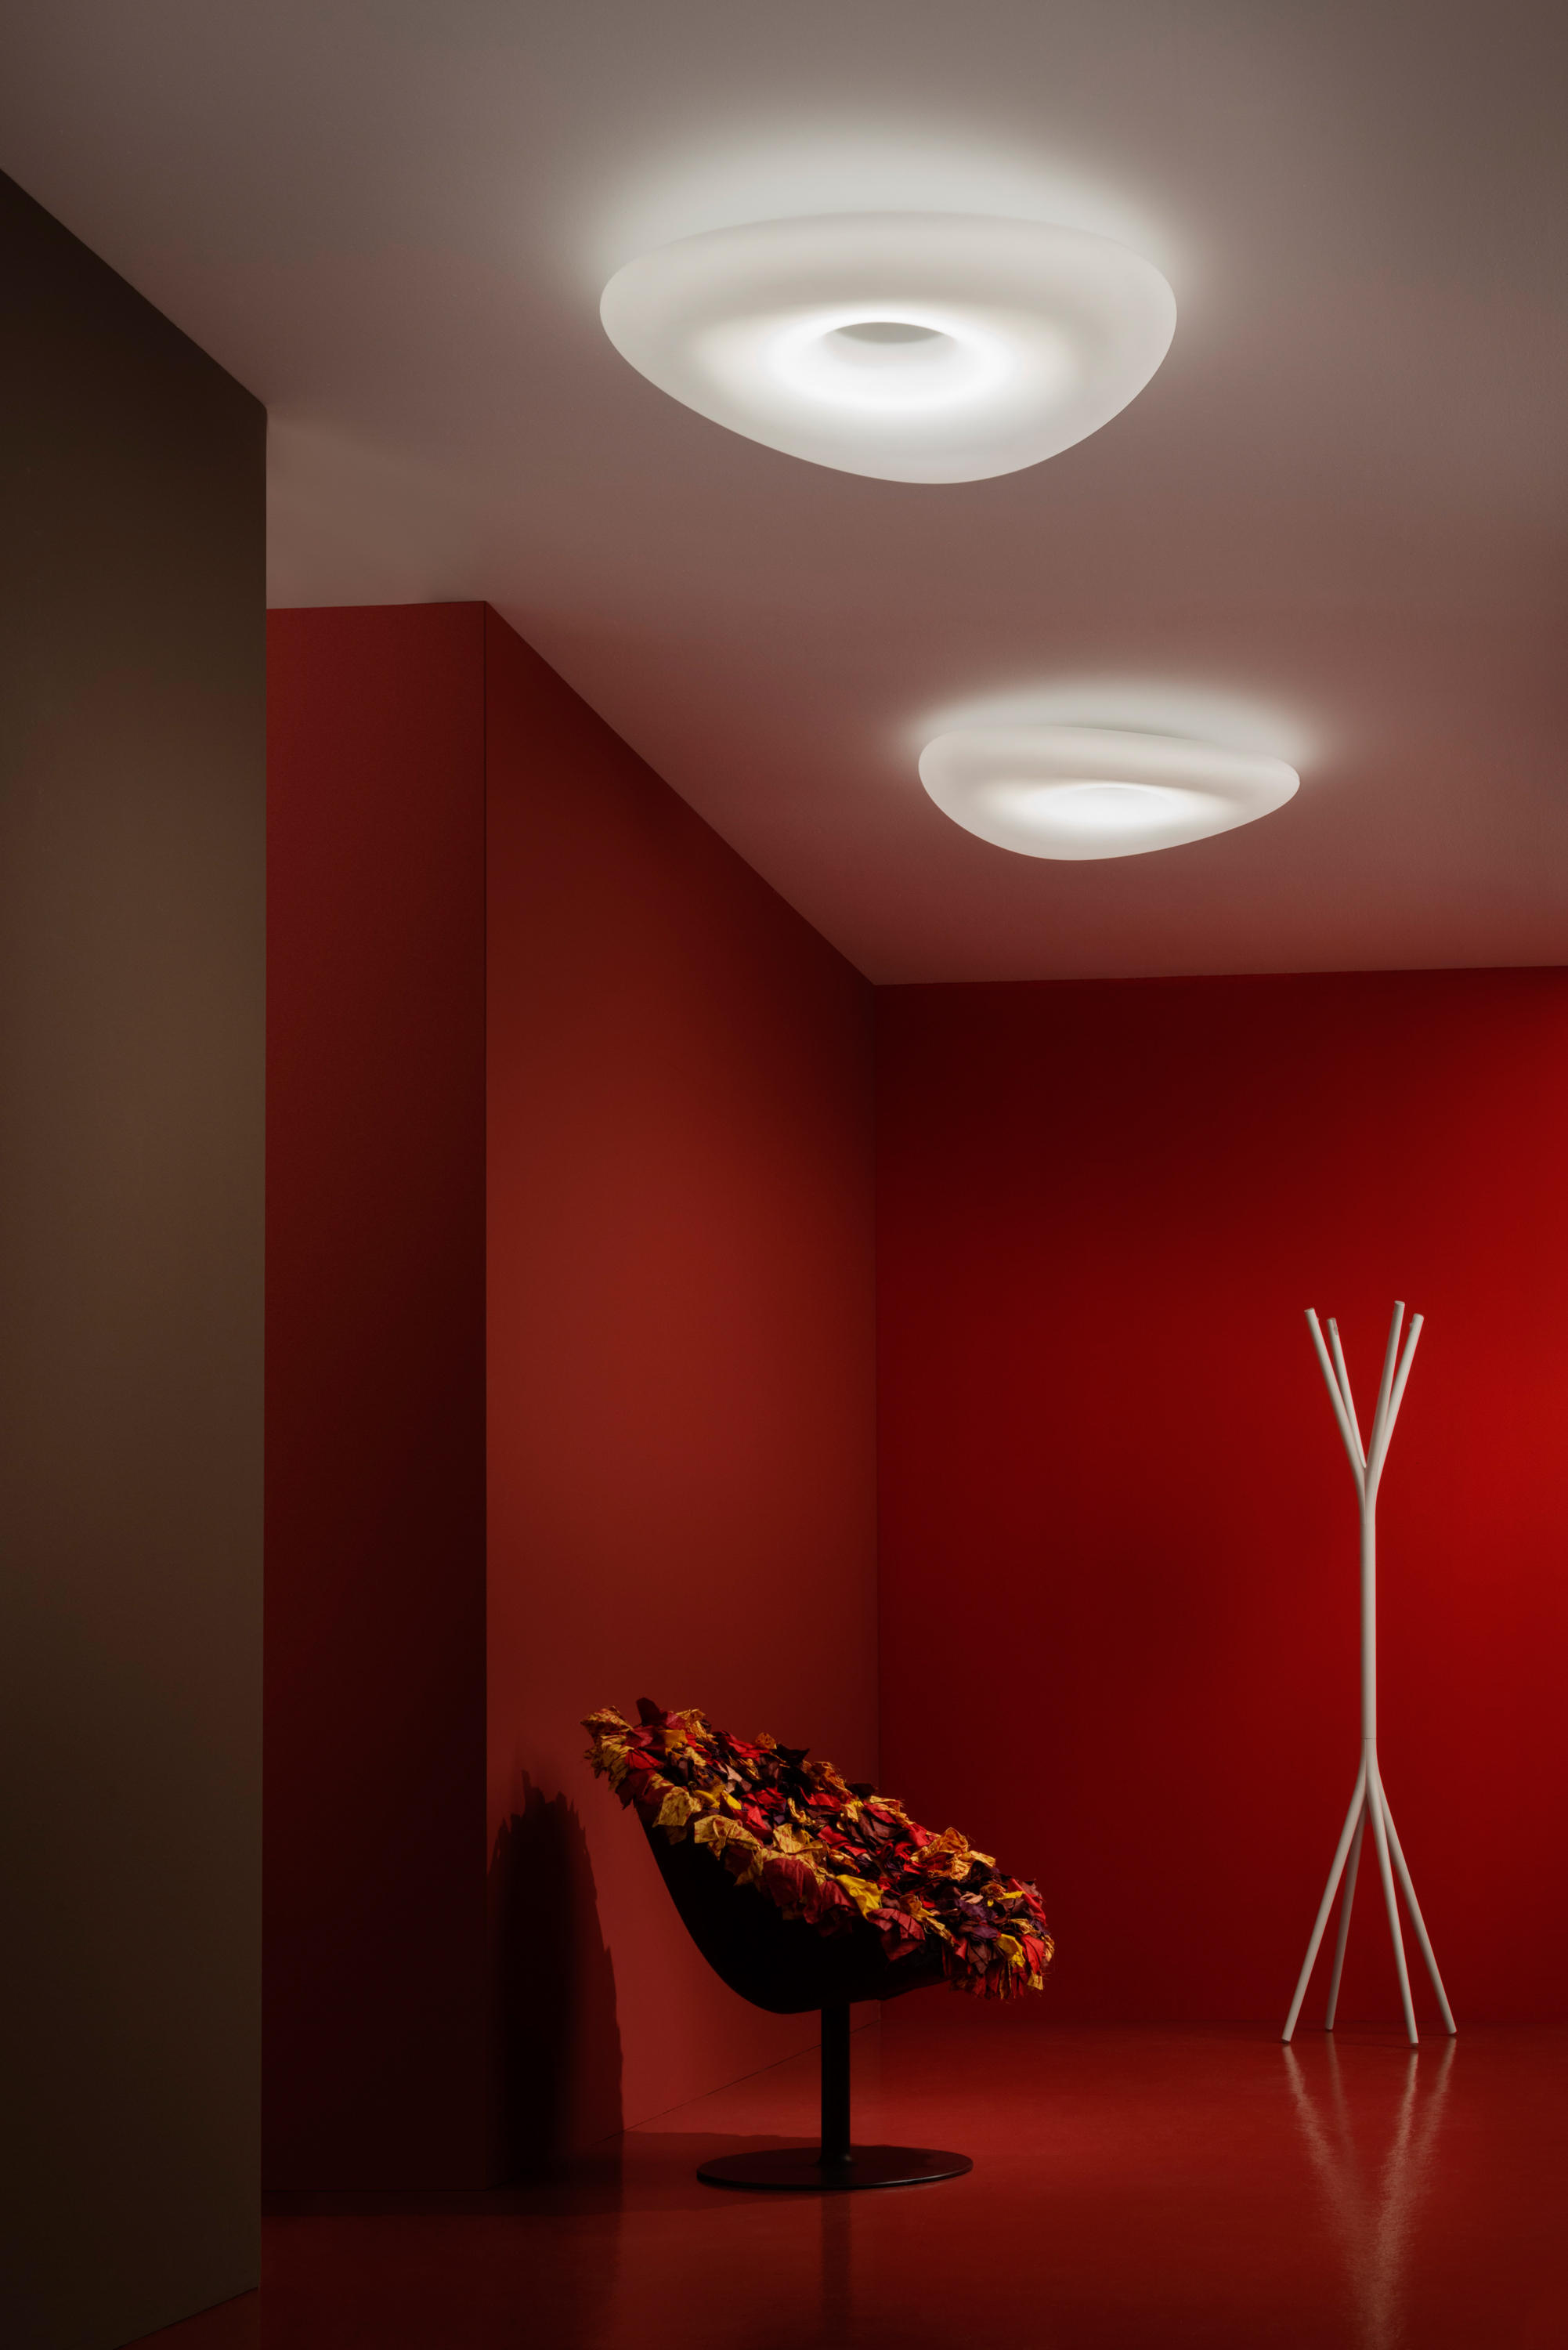 Enhance the illumination of your house interiors with Mr